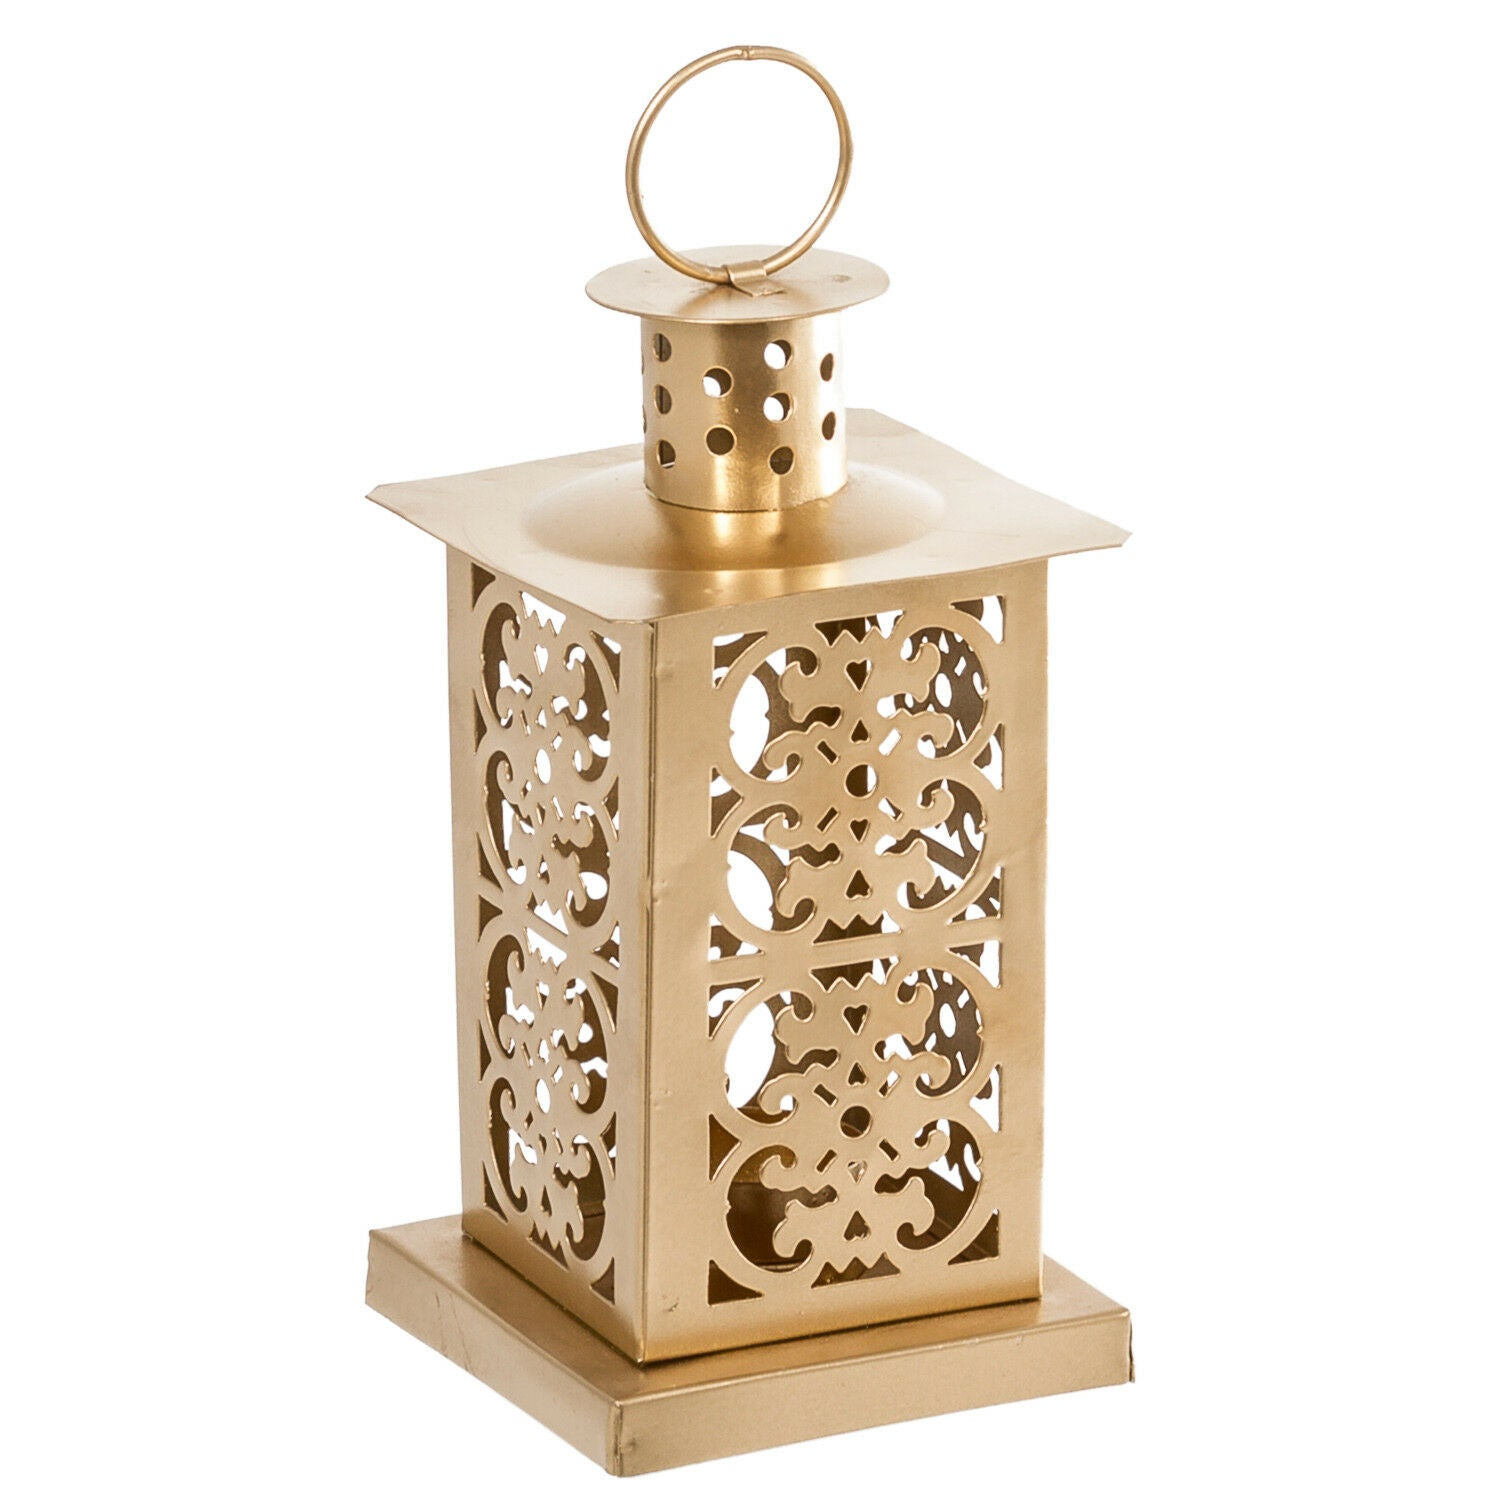 Metal Gold Moroccan Lantern Candle Holder - Tea Light Candle Holder